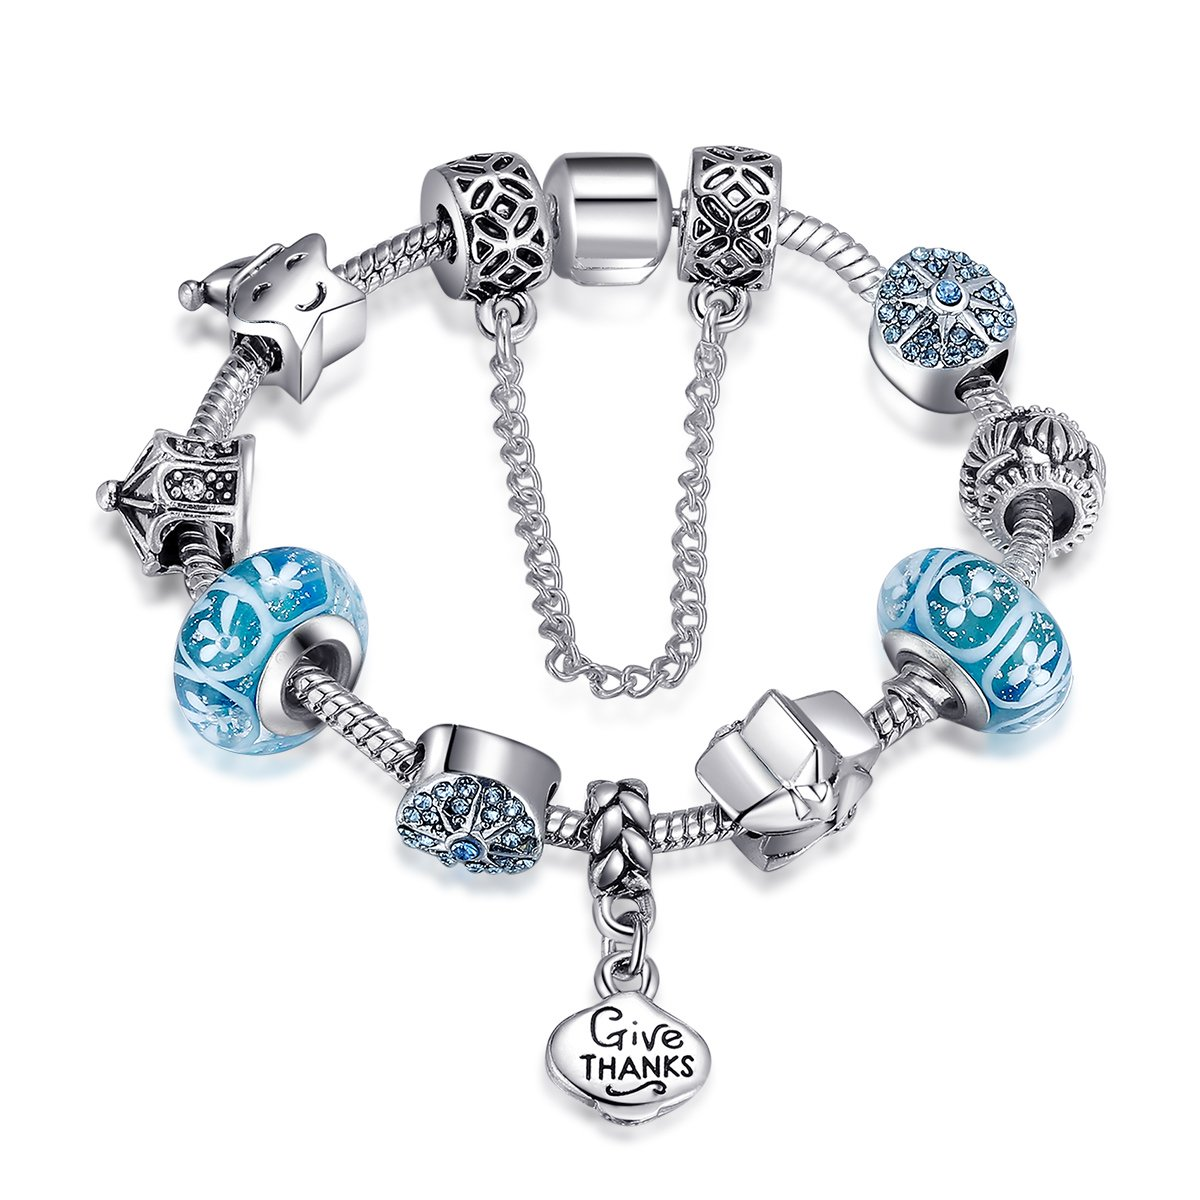 Presentski Silver Plated Give Thanks Blue Charm Bracelet, DIY Gift for Teen Girls and Women (7.1in and 7.9in)